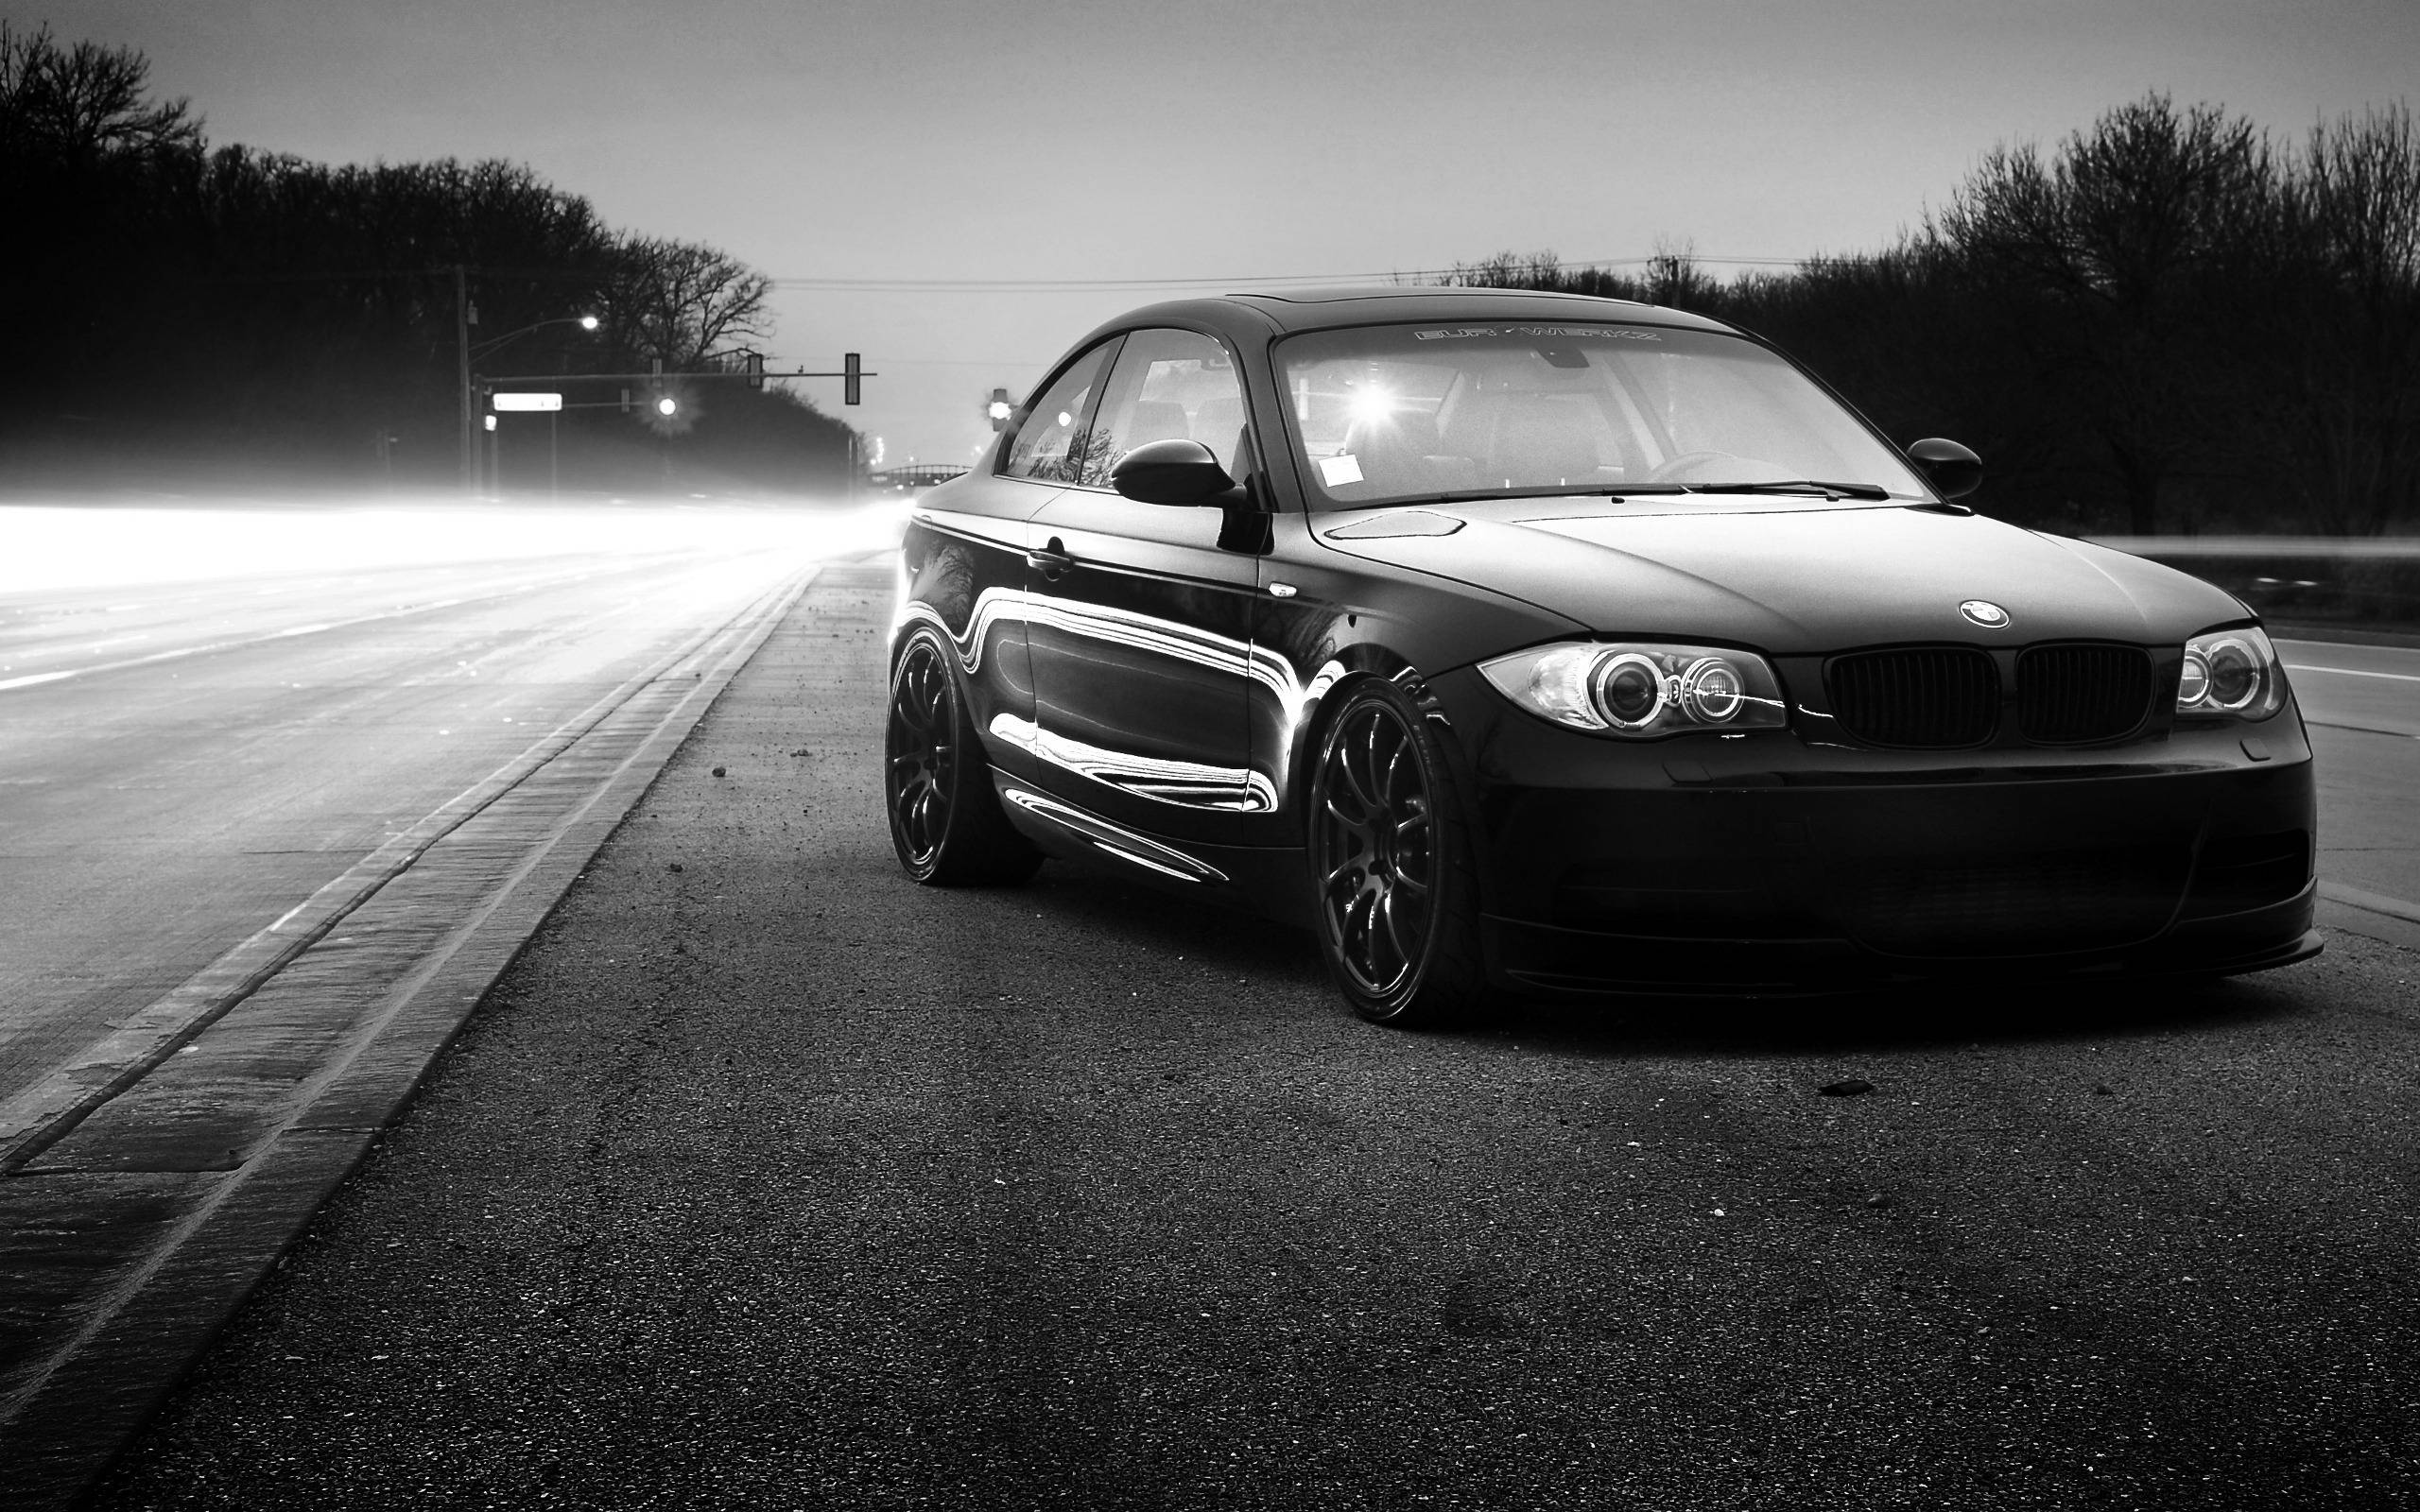 <b>BMW 135i Wallpapers</b> - <b>Wallpaper</b> Cave